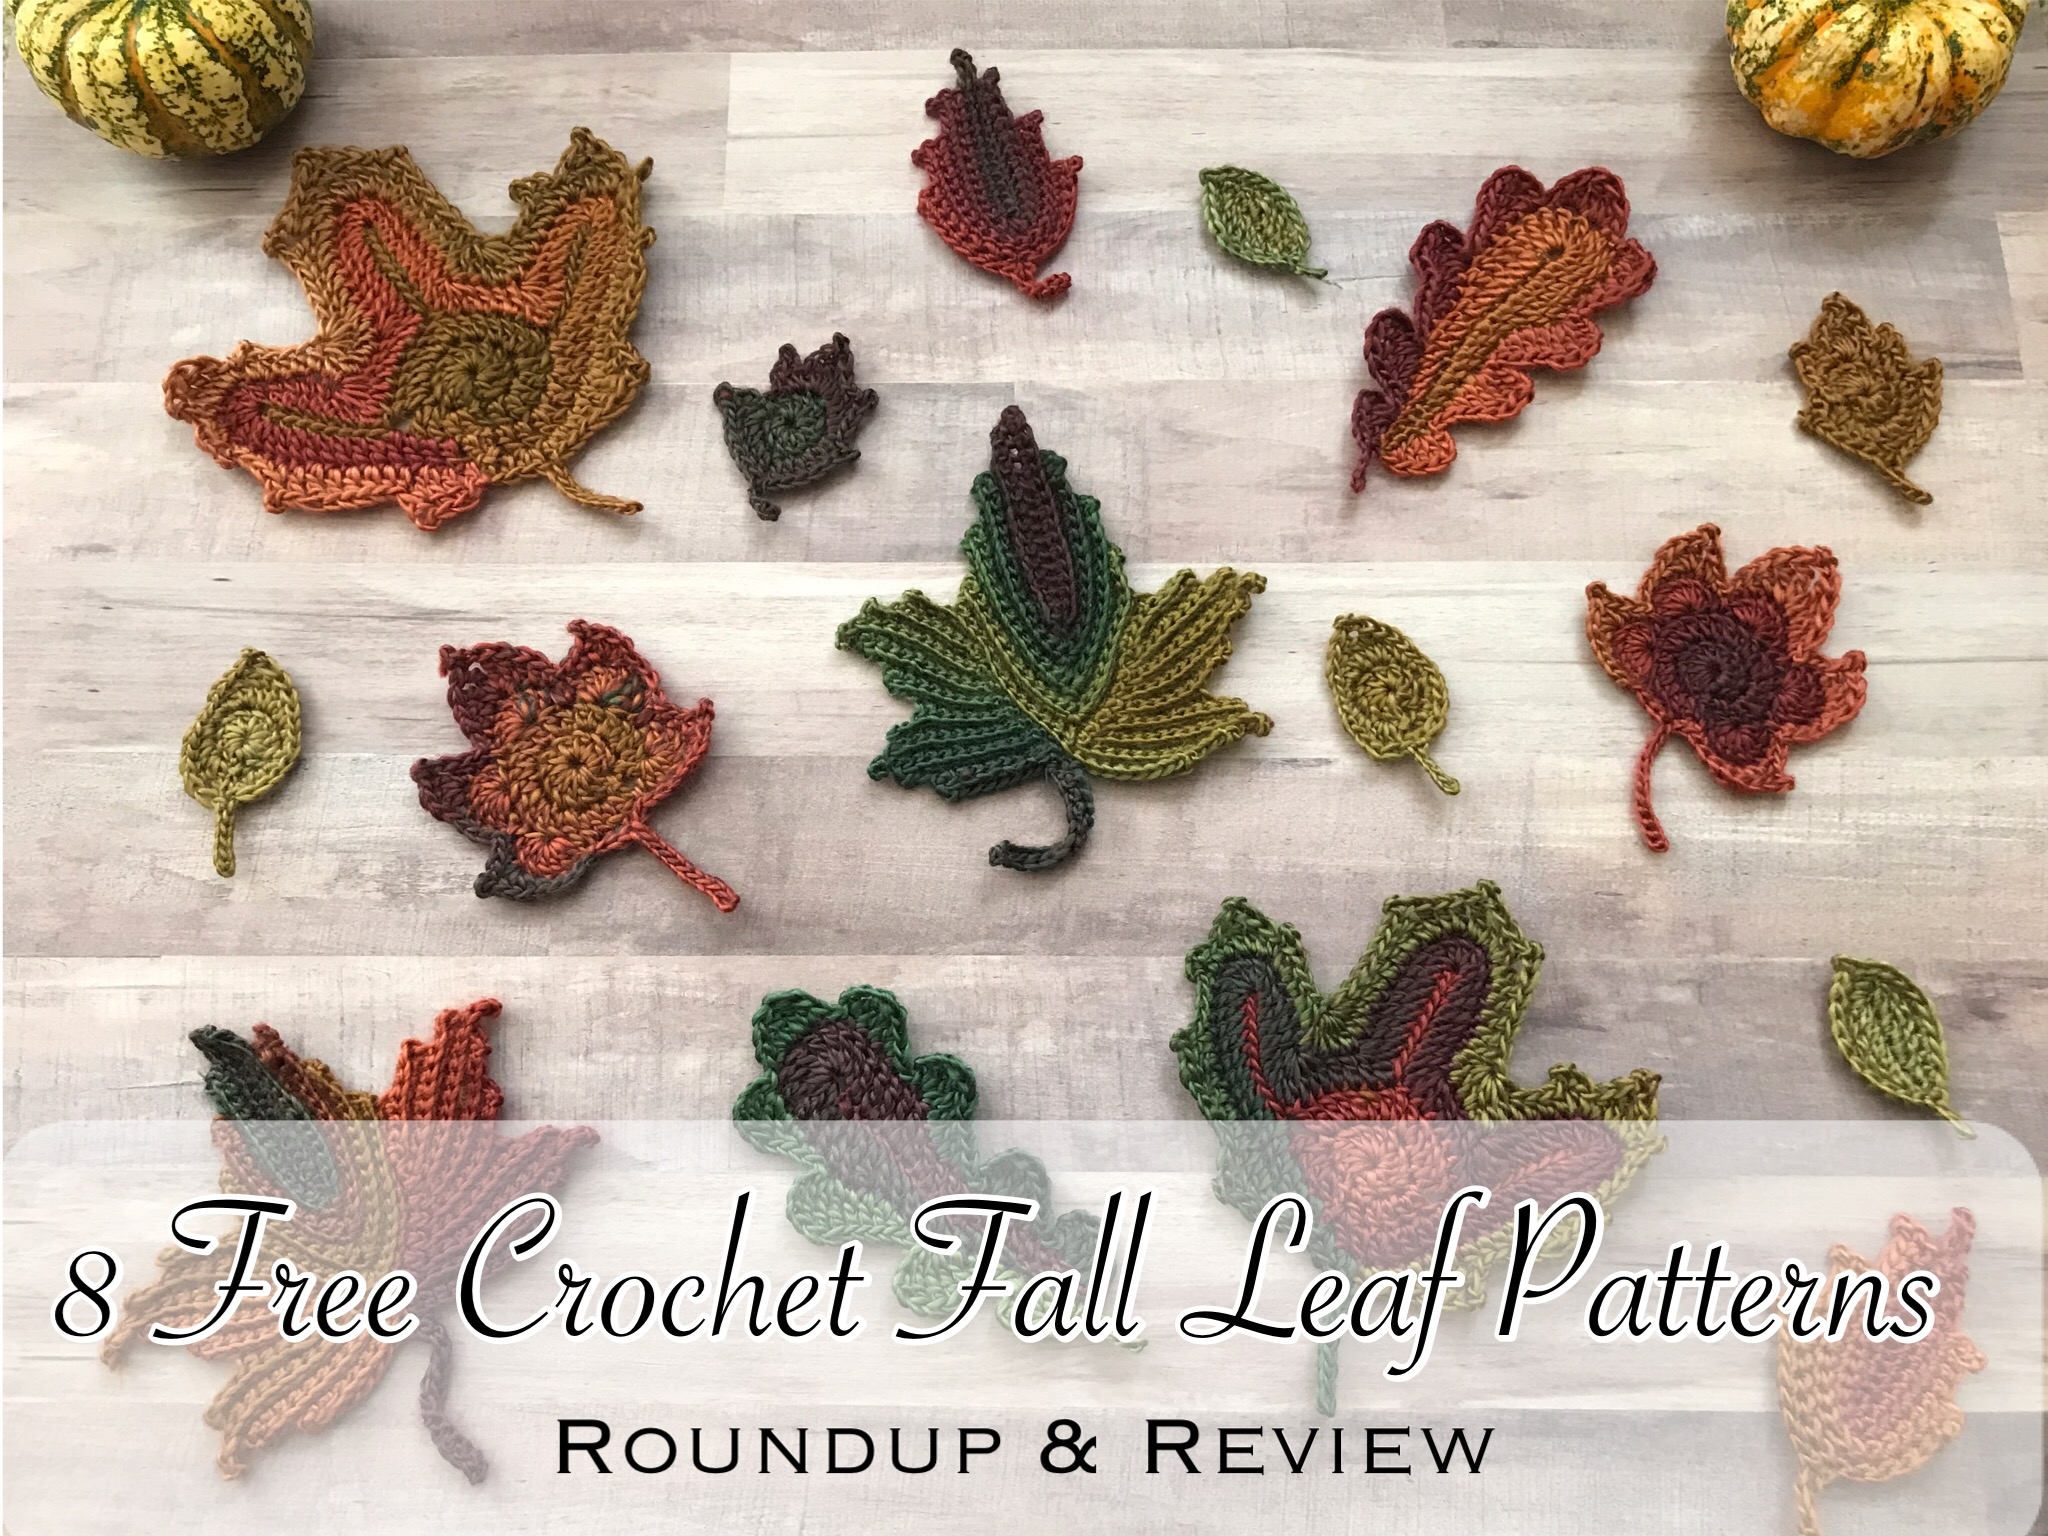 8 Free Crochet Fall Leaf Patterns Roundup Review Crafting For Weeks